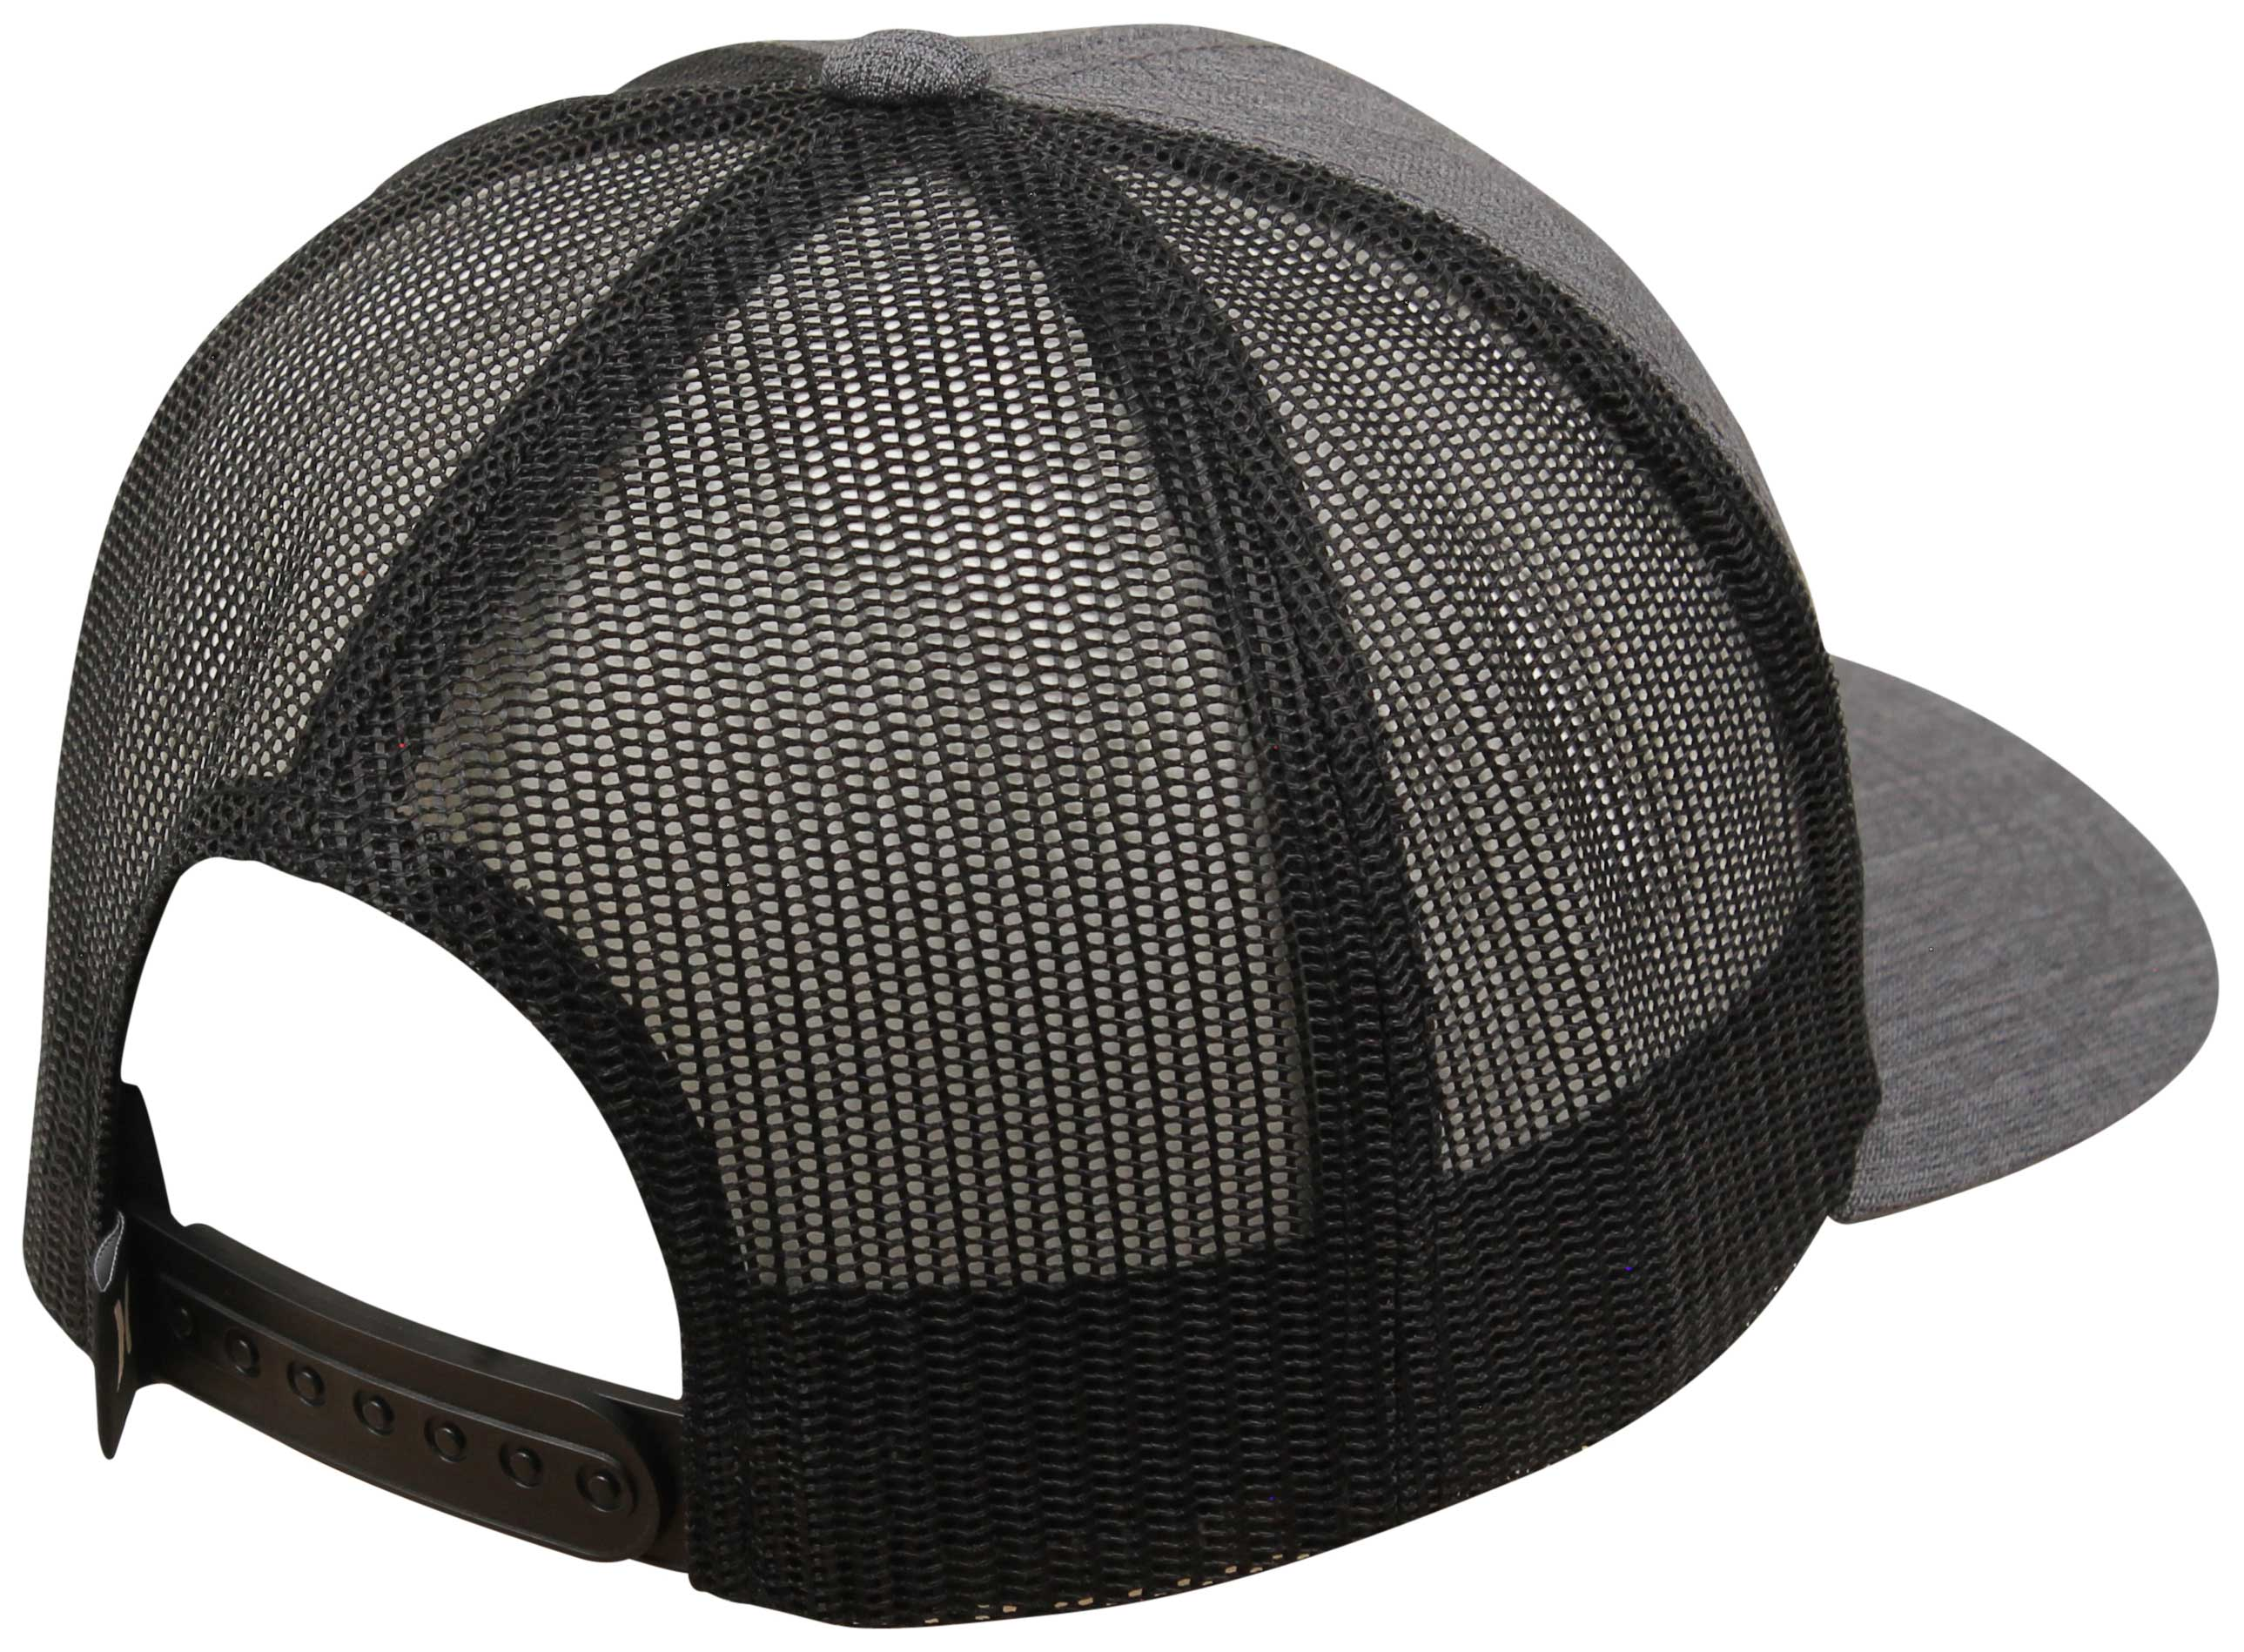 ba093d330b29b Hurley Trademark Trucker Hat - Black For Sale at Surfboards.com ...